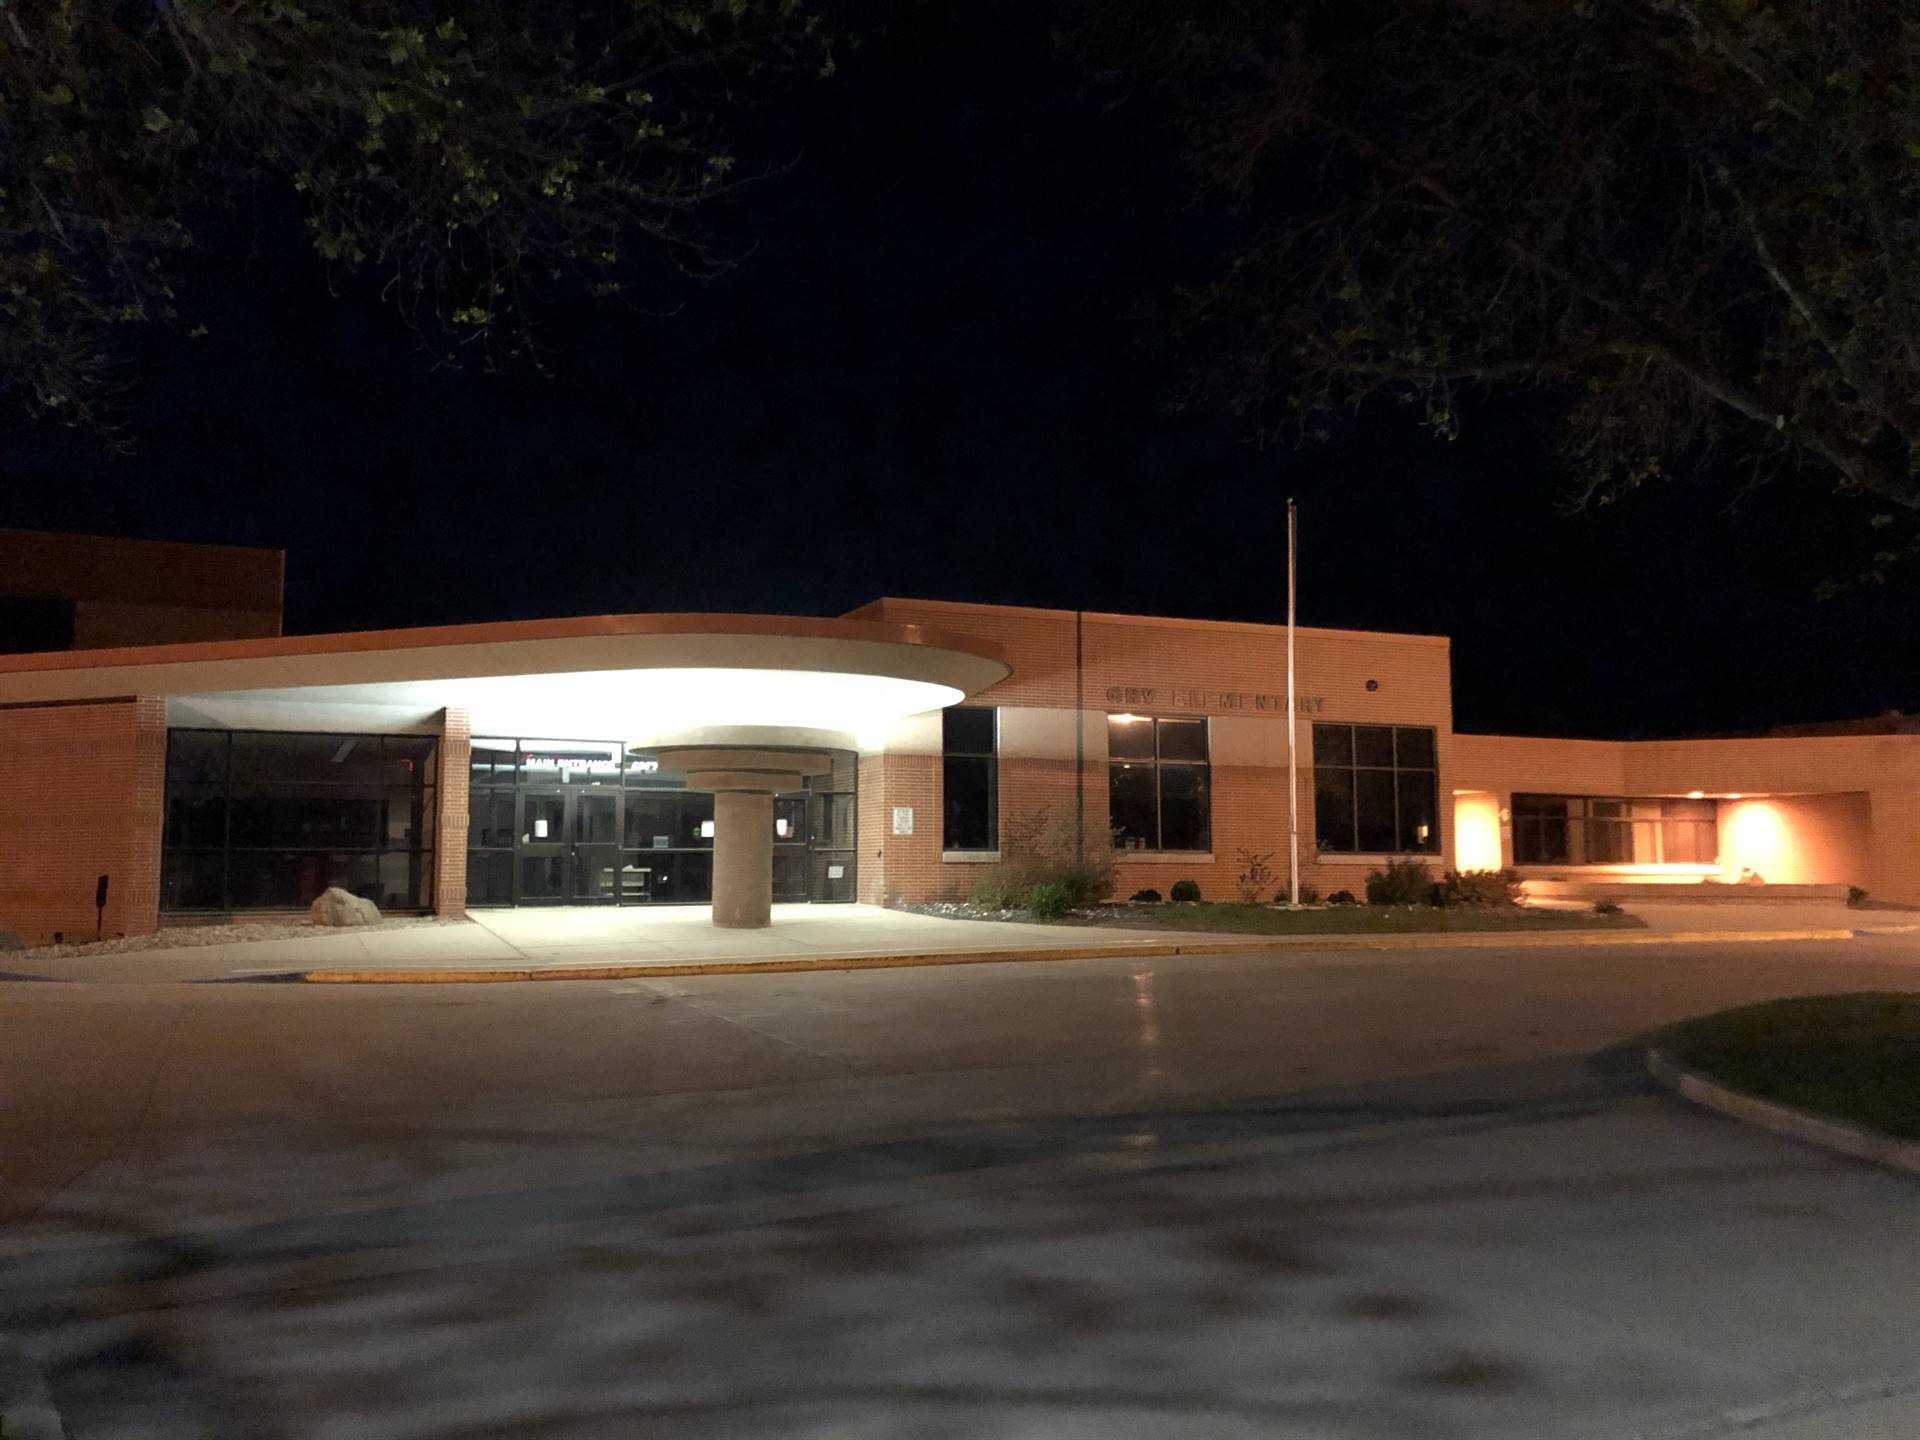 Preschool to 8th grade building at night